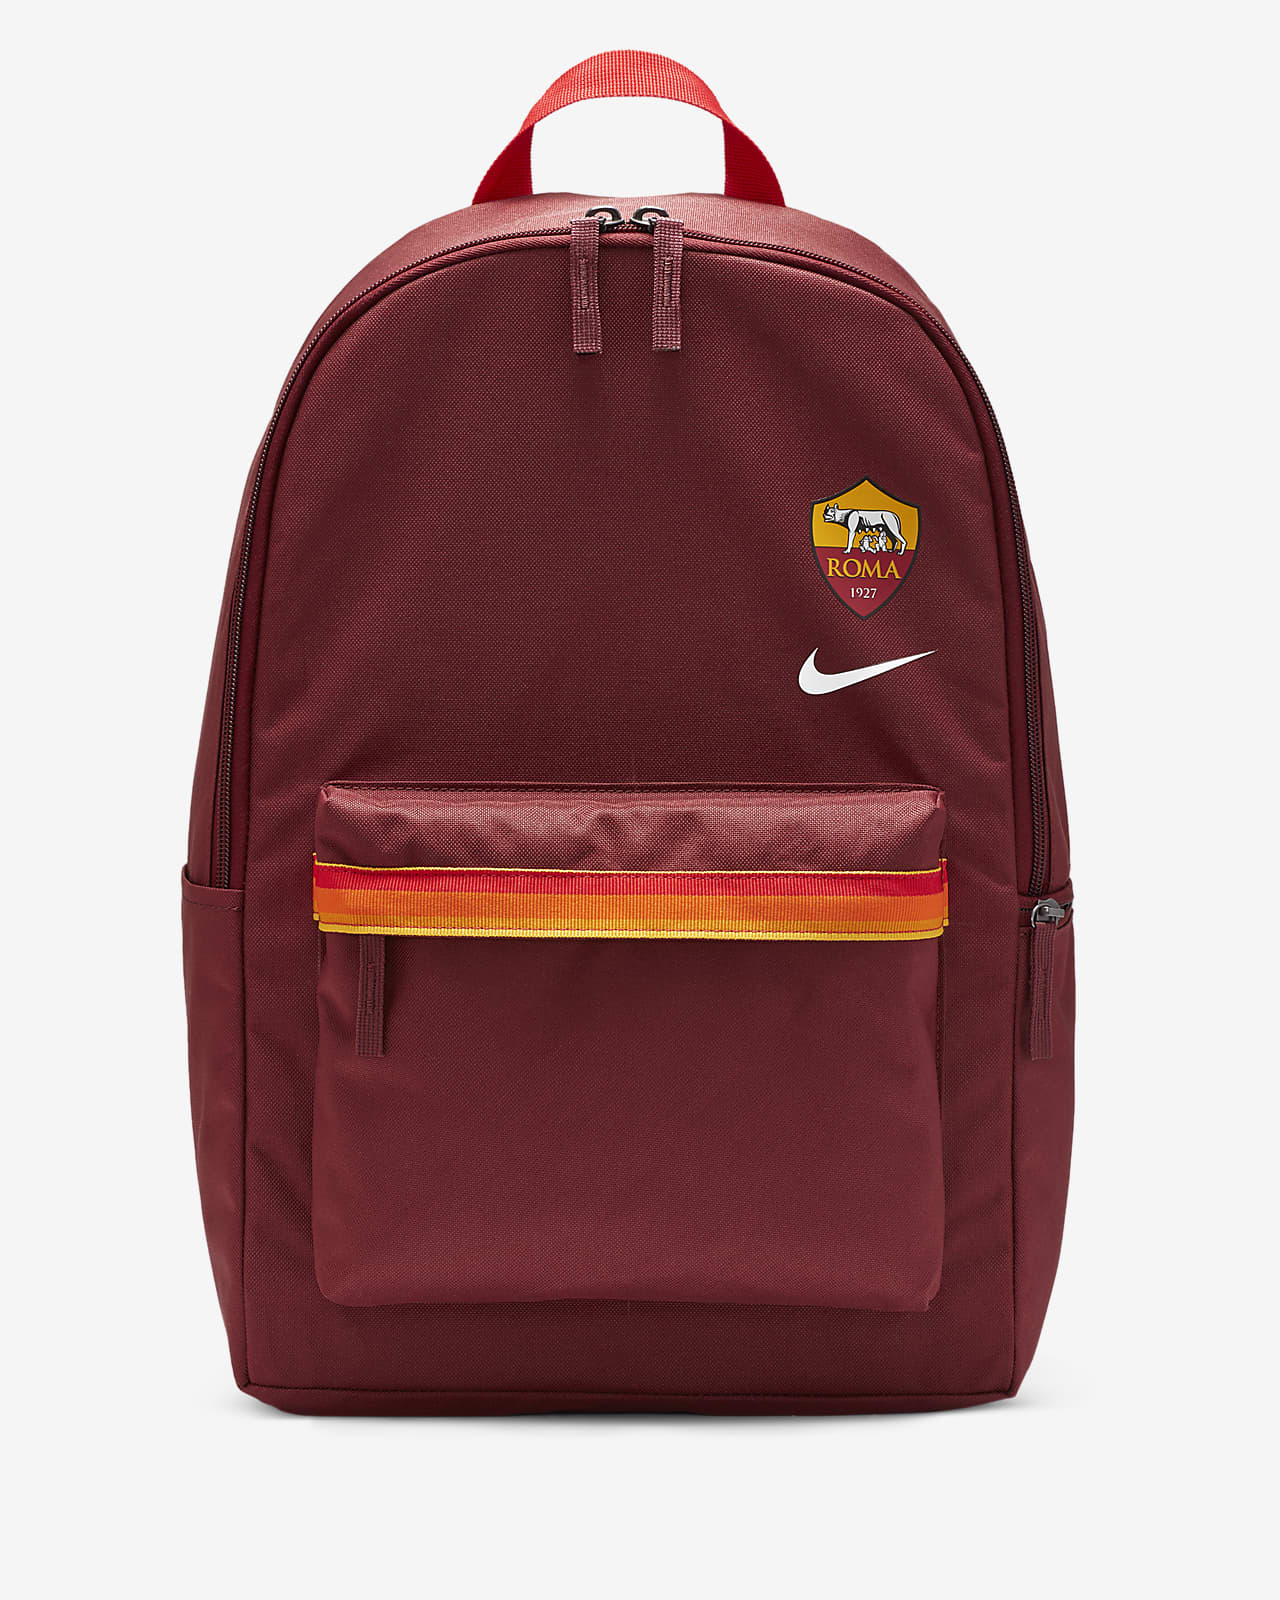 AS Roma Stadium Football Backpack